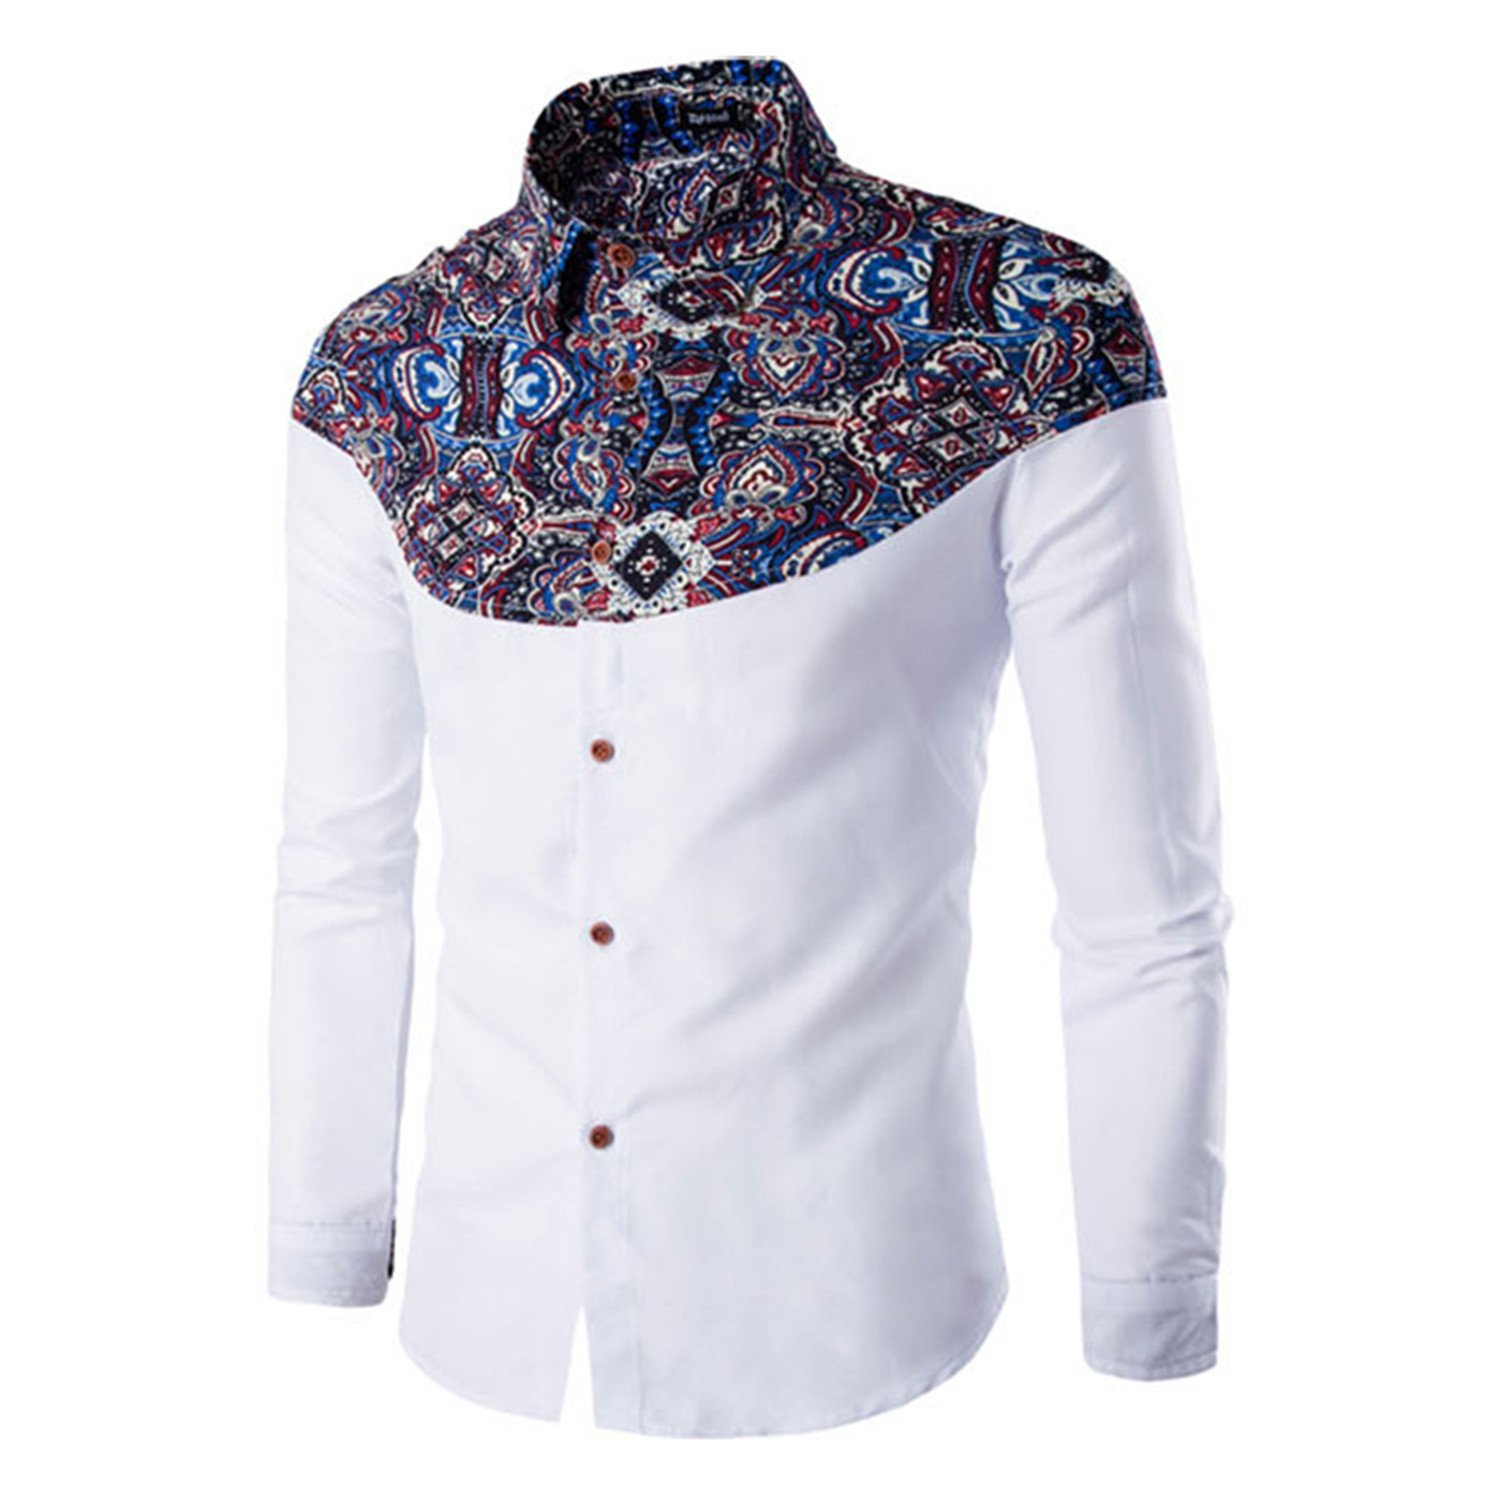 Thadensama Vintage Flower Patchwork Fashion Mens Shirts Full Sleeve Western Casual Young Man Tops Boys Slim Fit M-2Xl